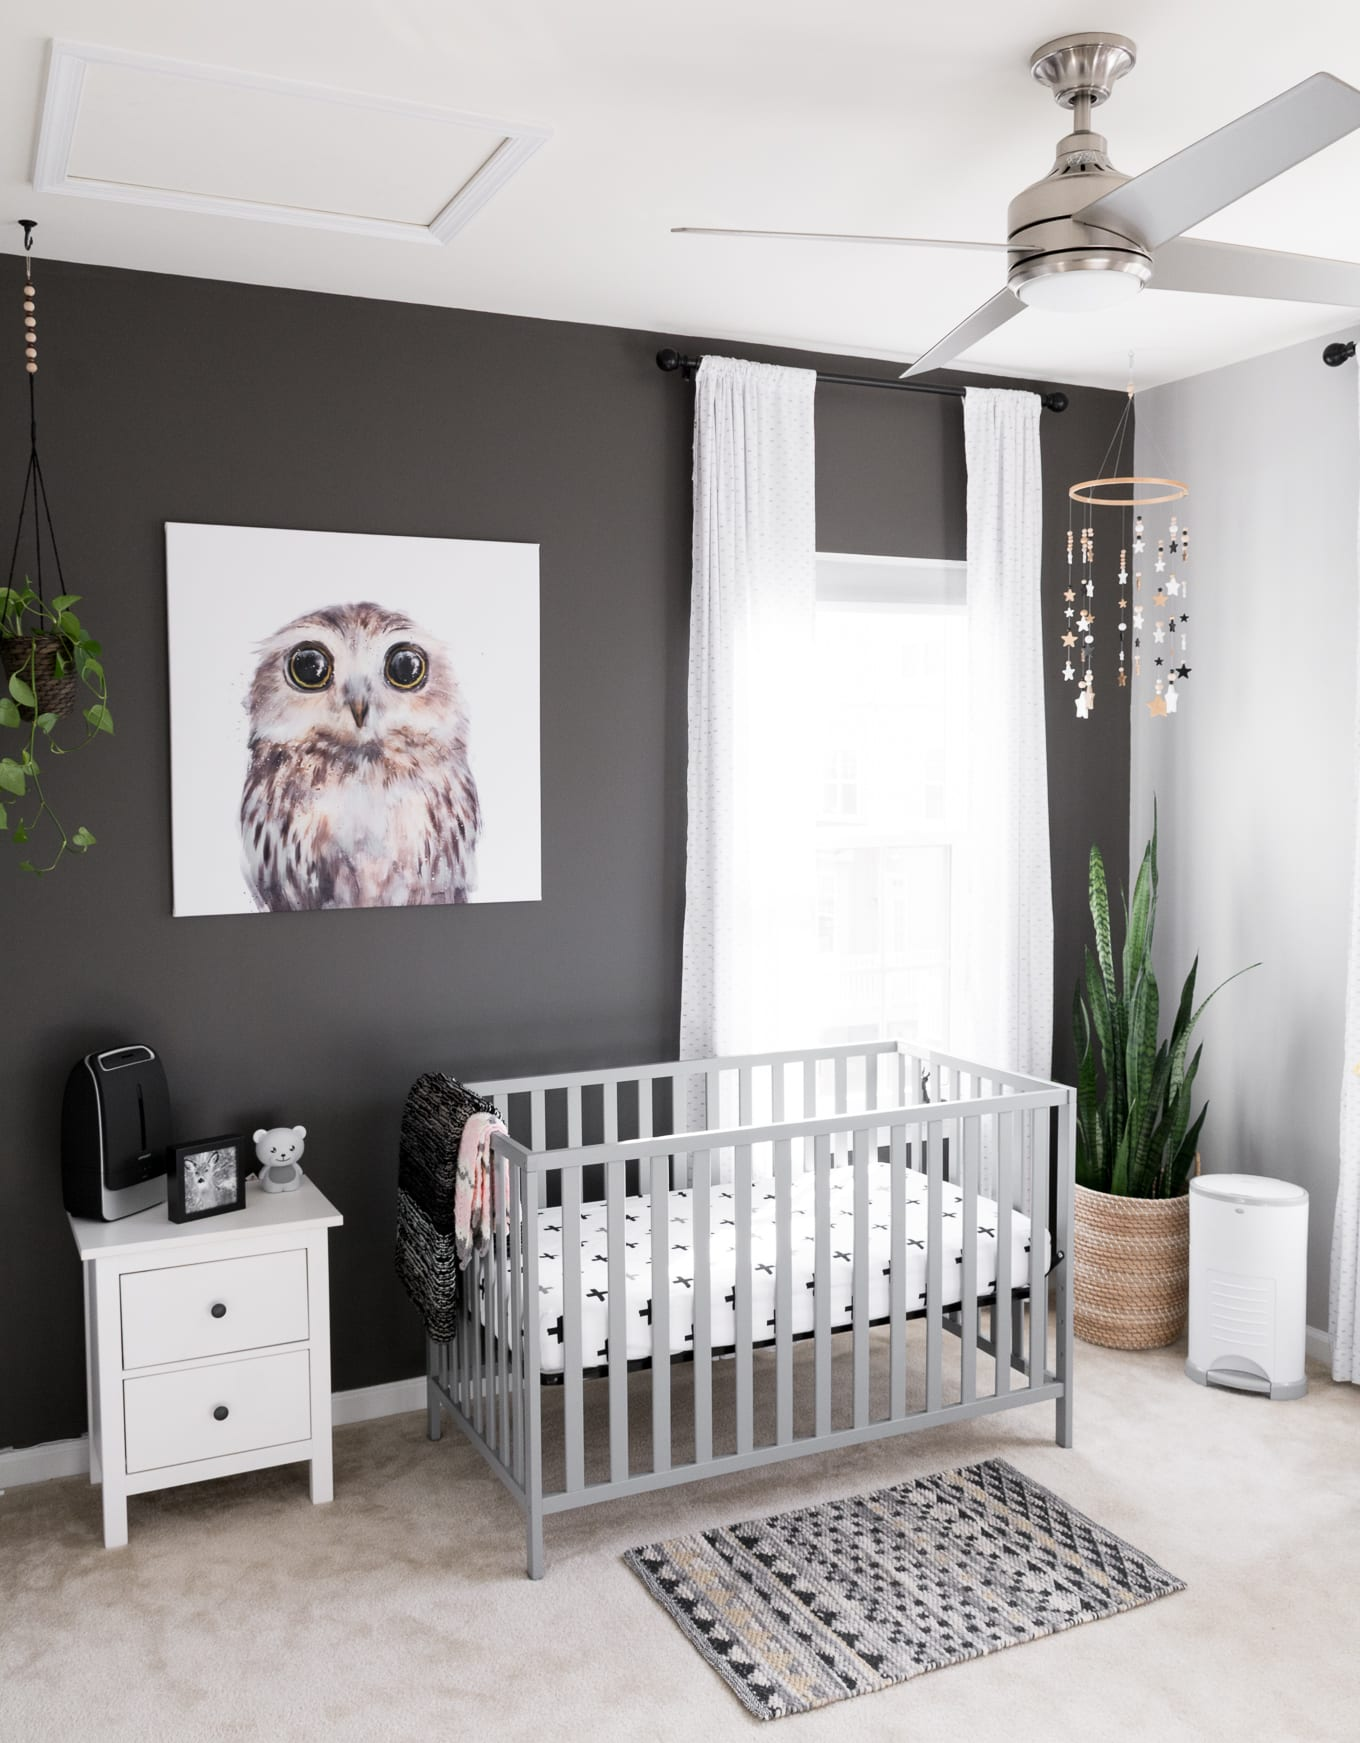 Gender-neutral nursery in a Modern Minimal Townhome